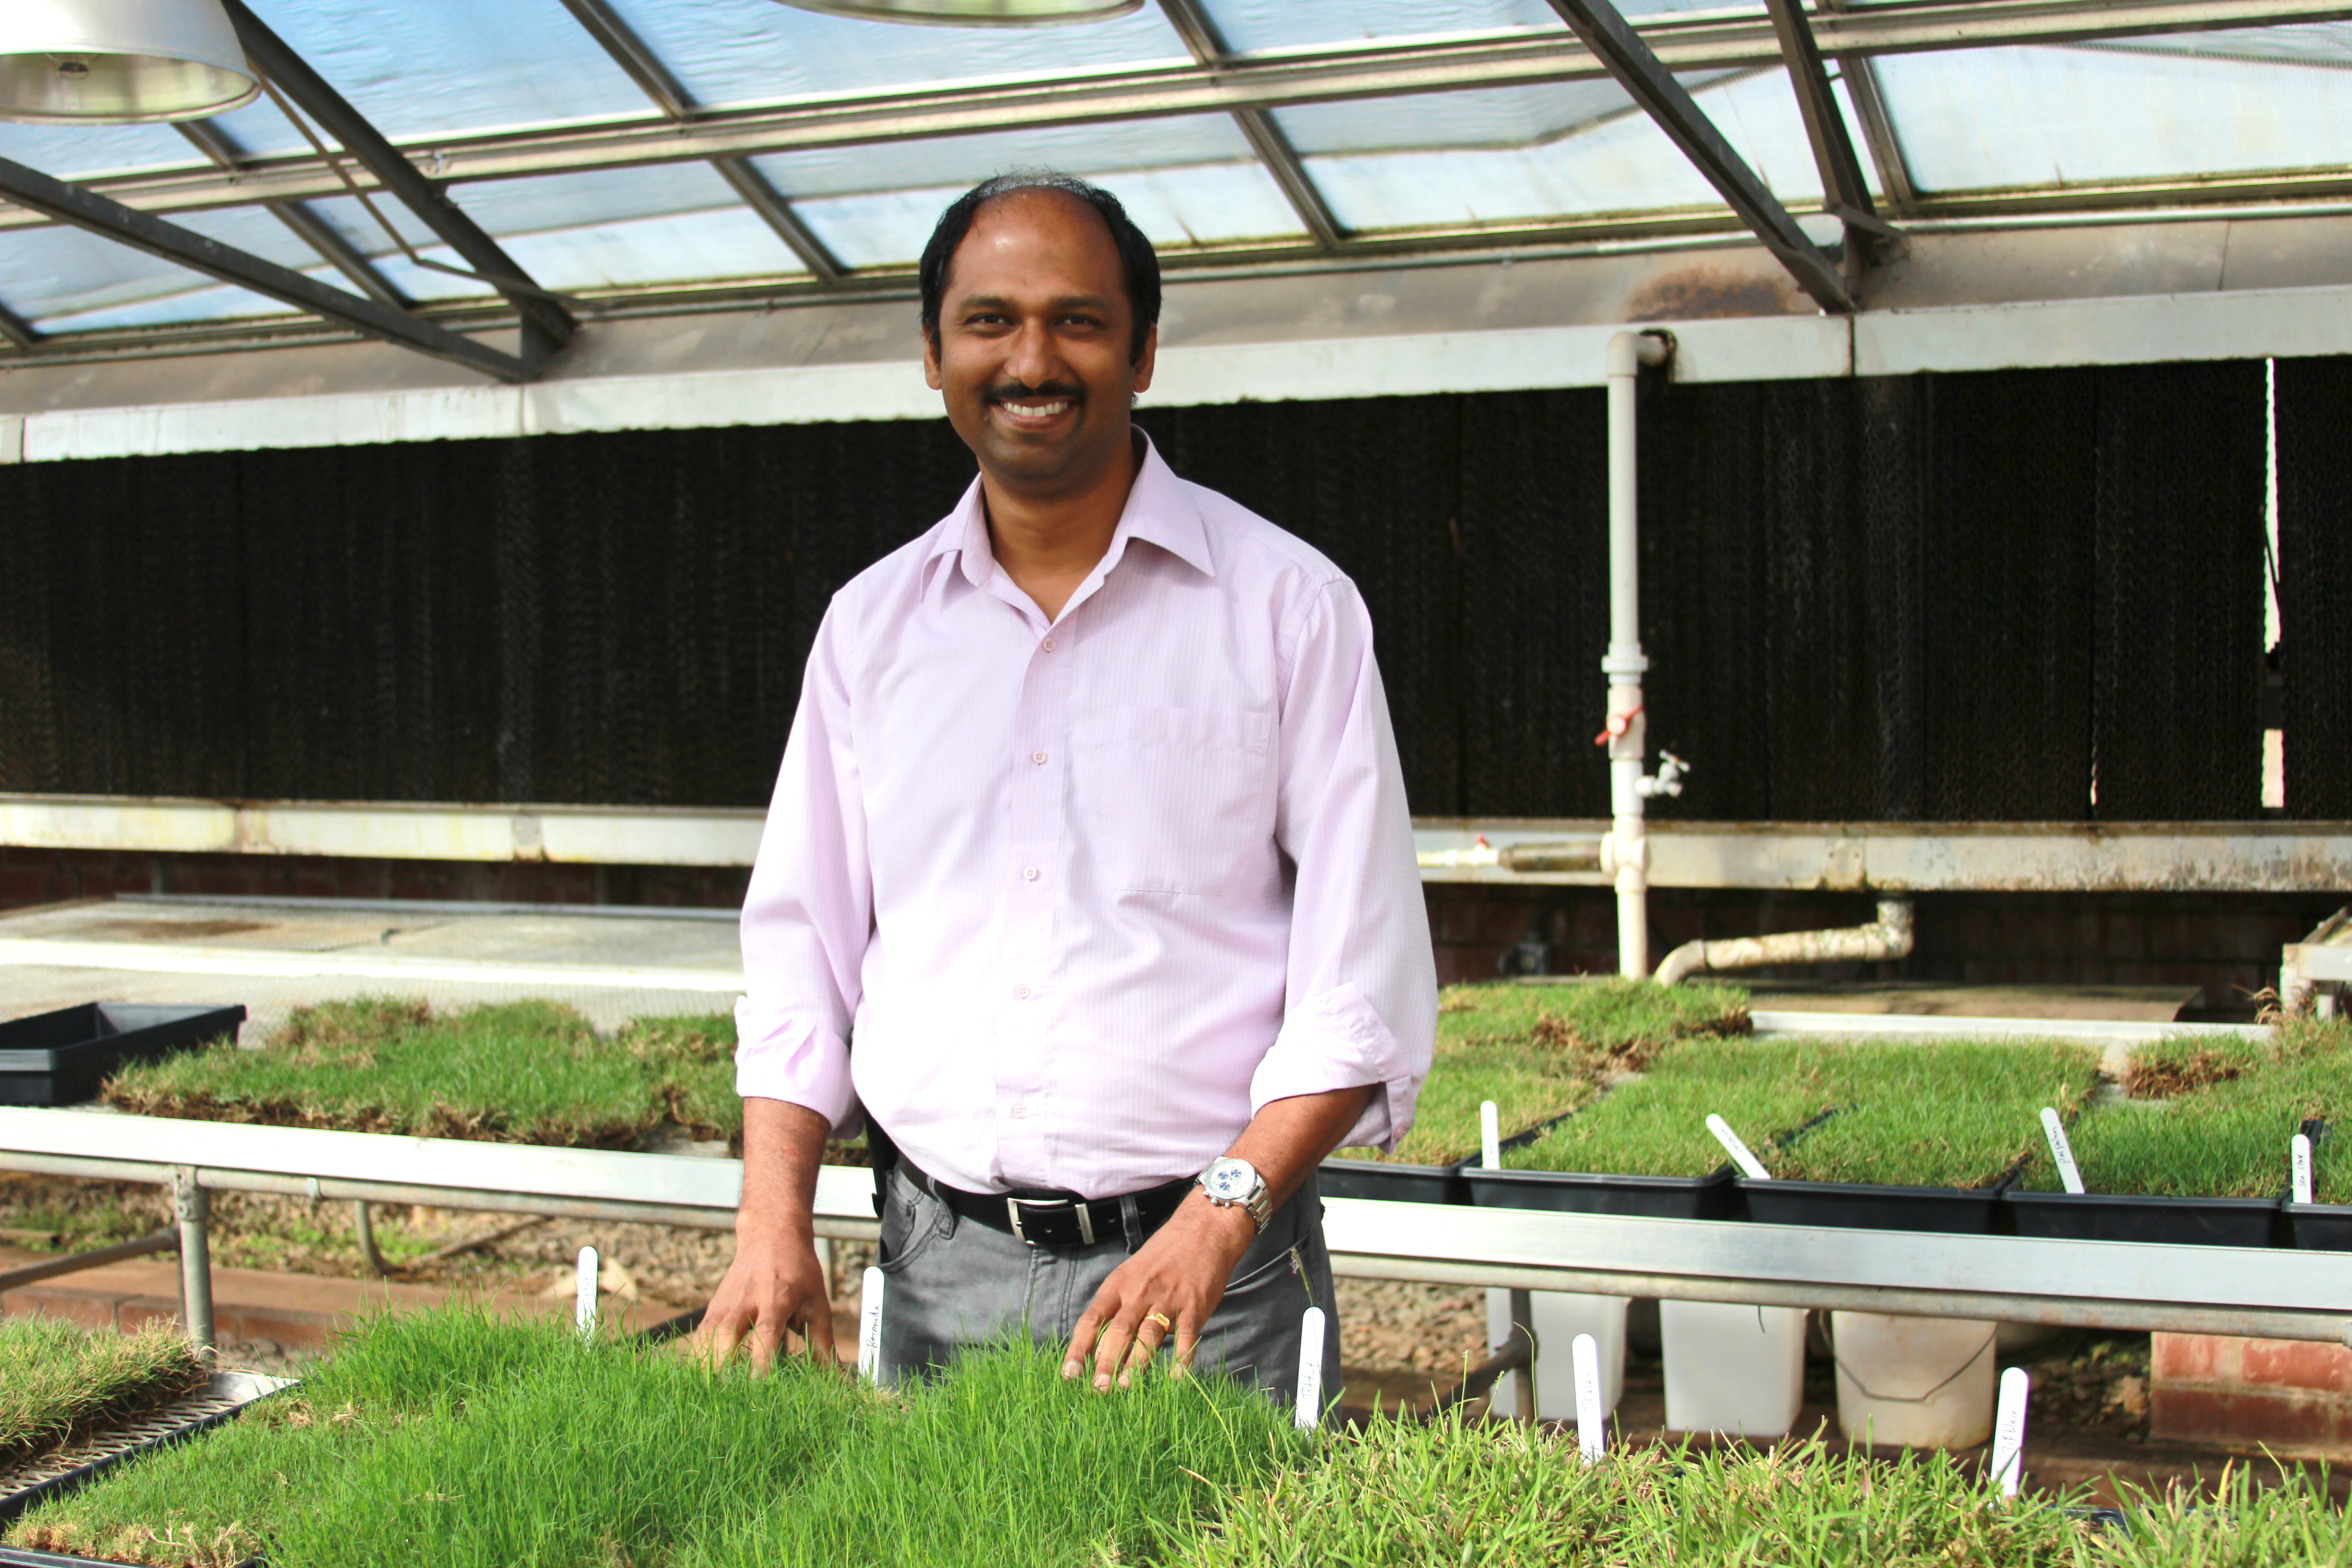 Shimat Joseph, an entomologist based on the University of Georgia Griffin campus, conducts research on turfgrass and ornamental plant pests. Joseph also works with UGA Cooperative Extension agents and teaches an entomology laboratory course for UGA students enrolled in the plant protection and pest management master's degree program.